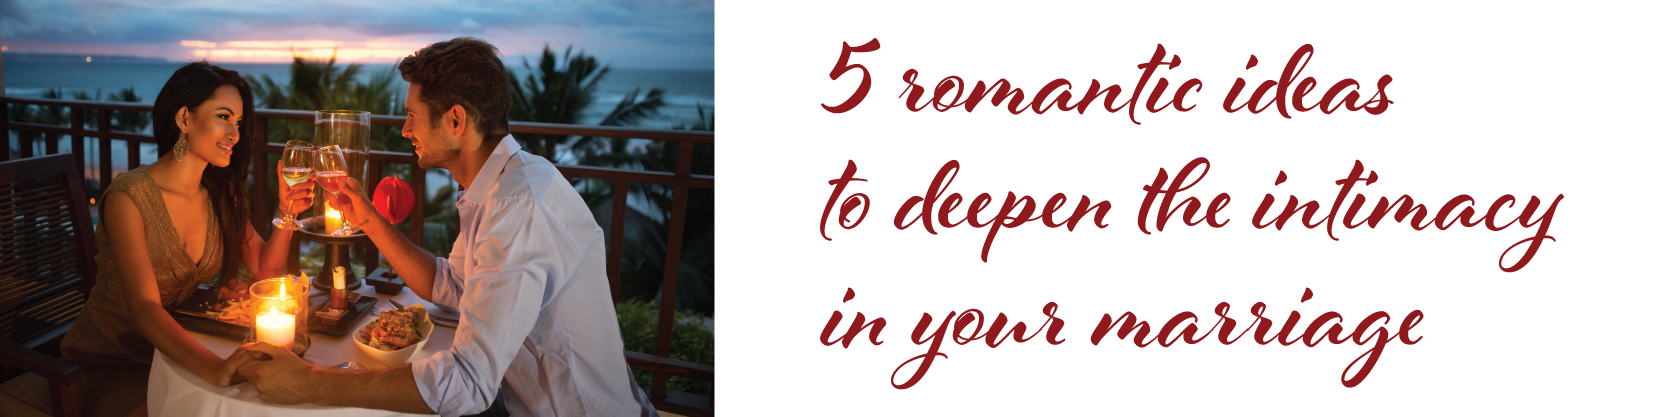 5 romantic ideas to deepen the intimacy in your marriage